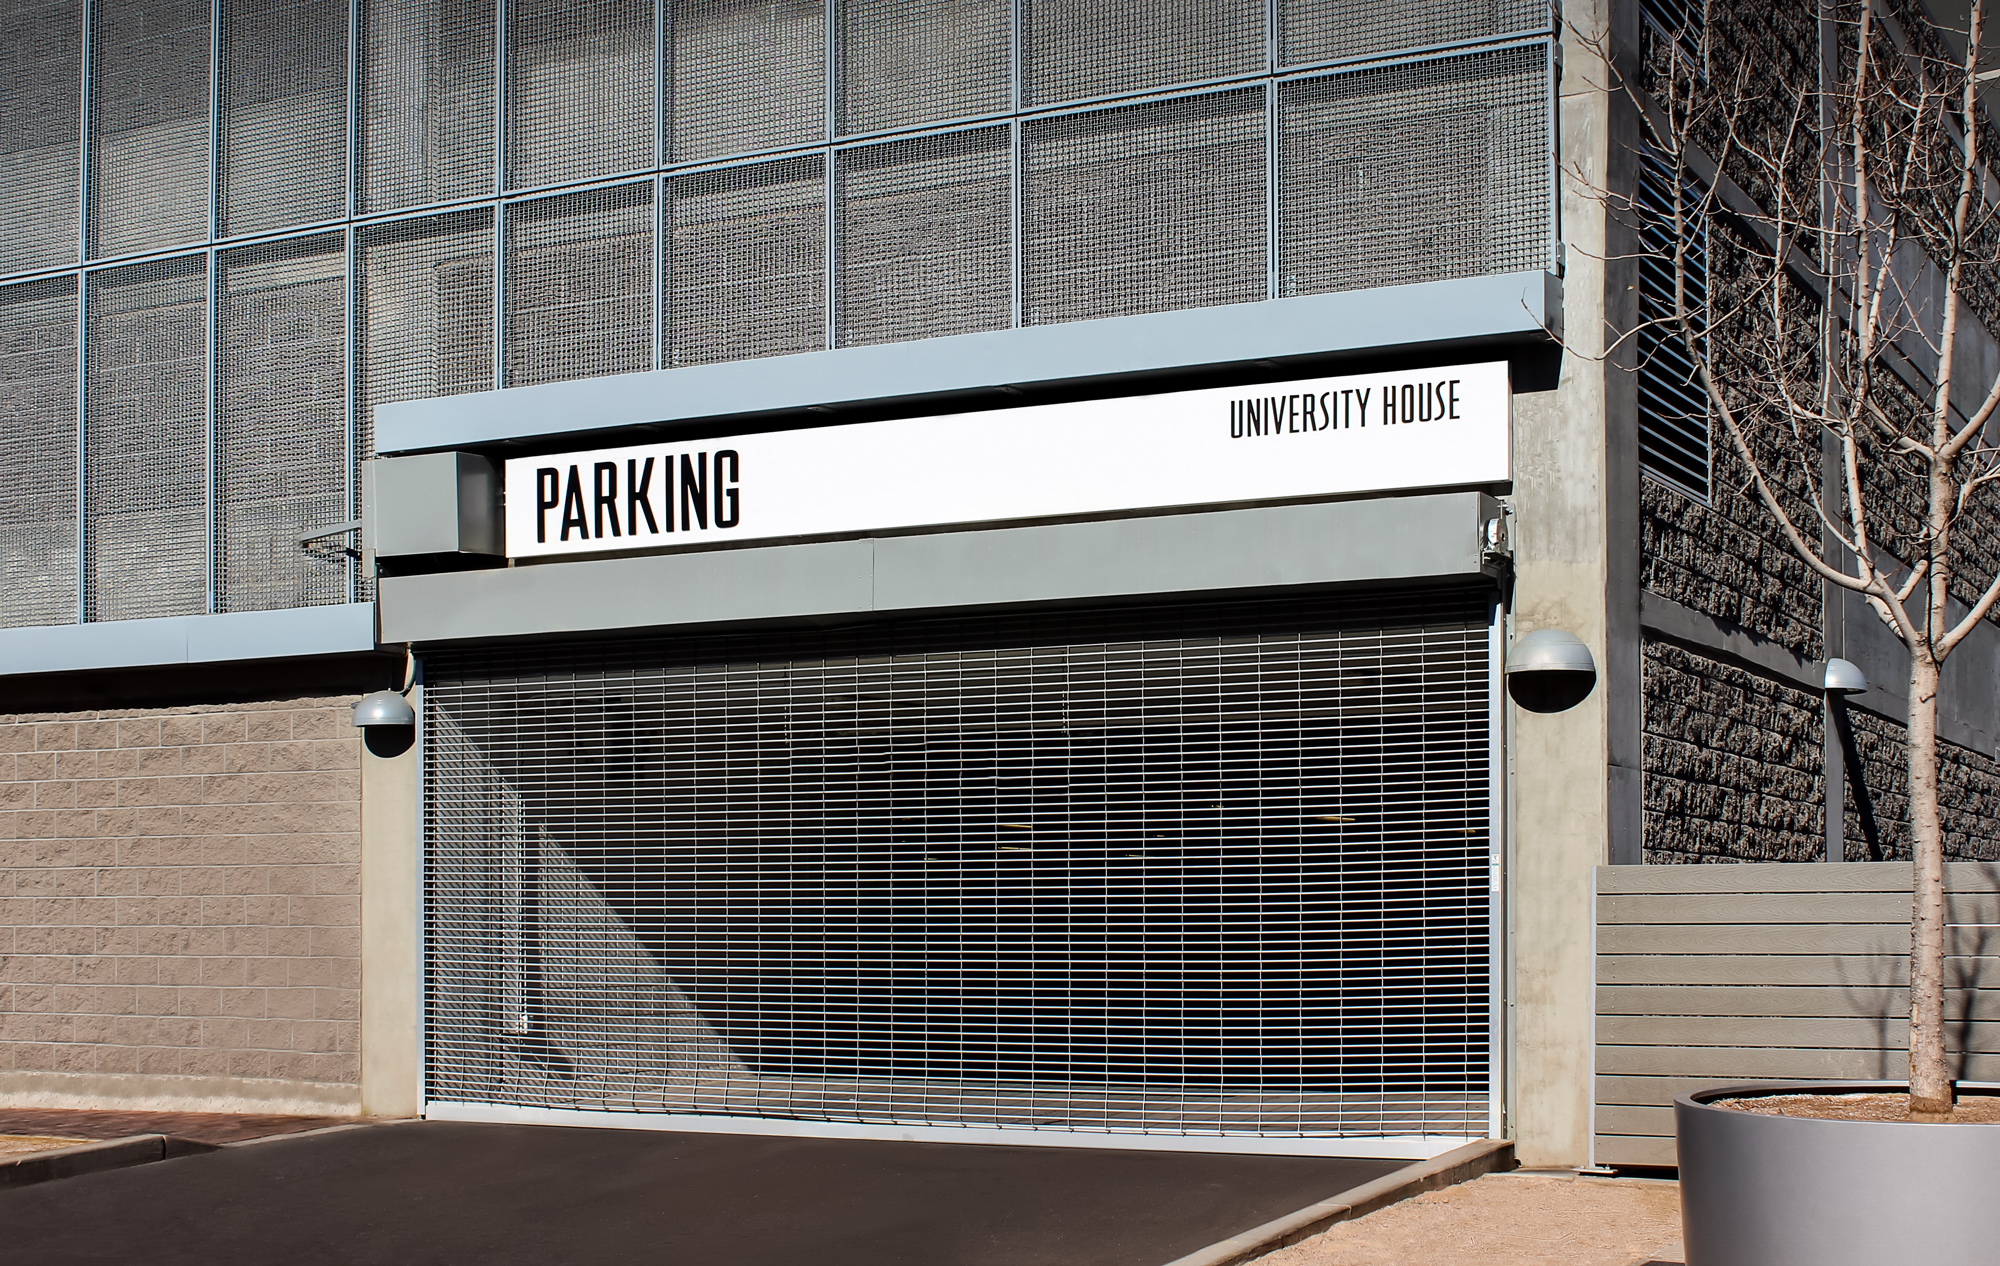 A simple black and white sign signals traffic to the parking garage entrance.